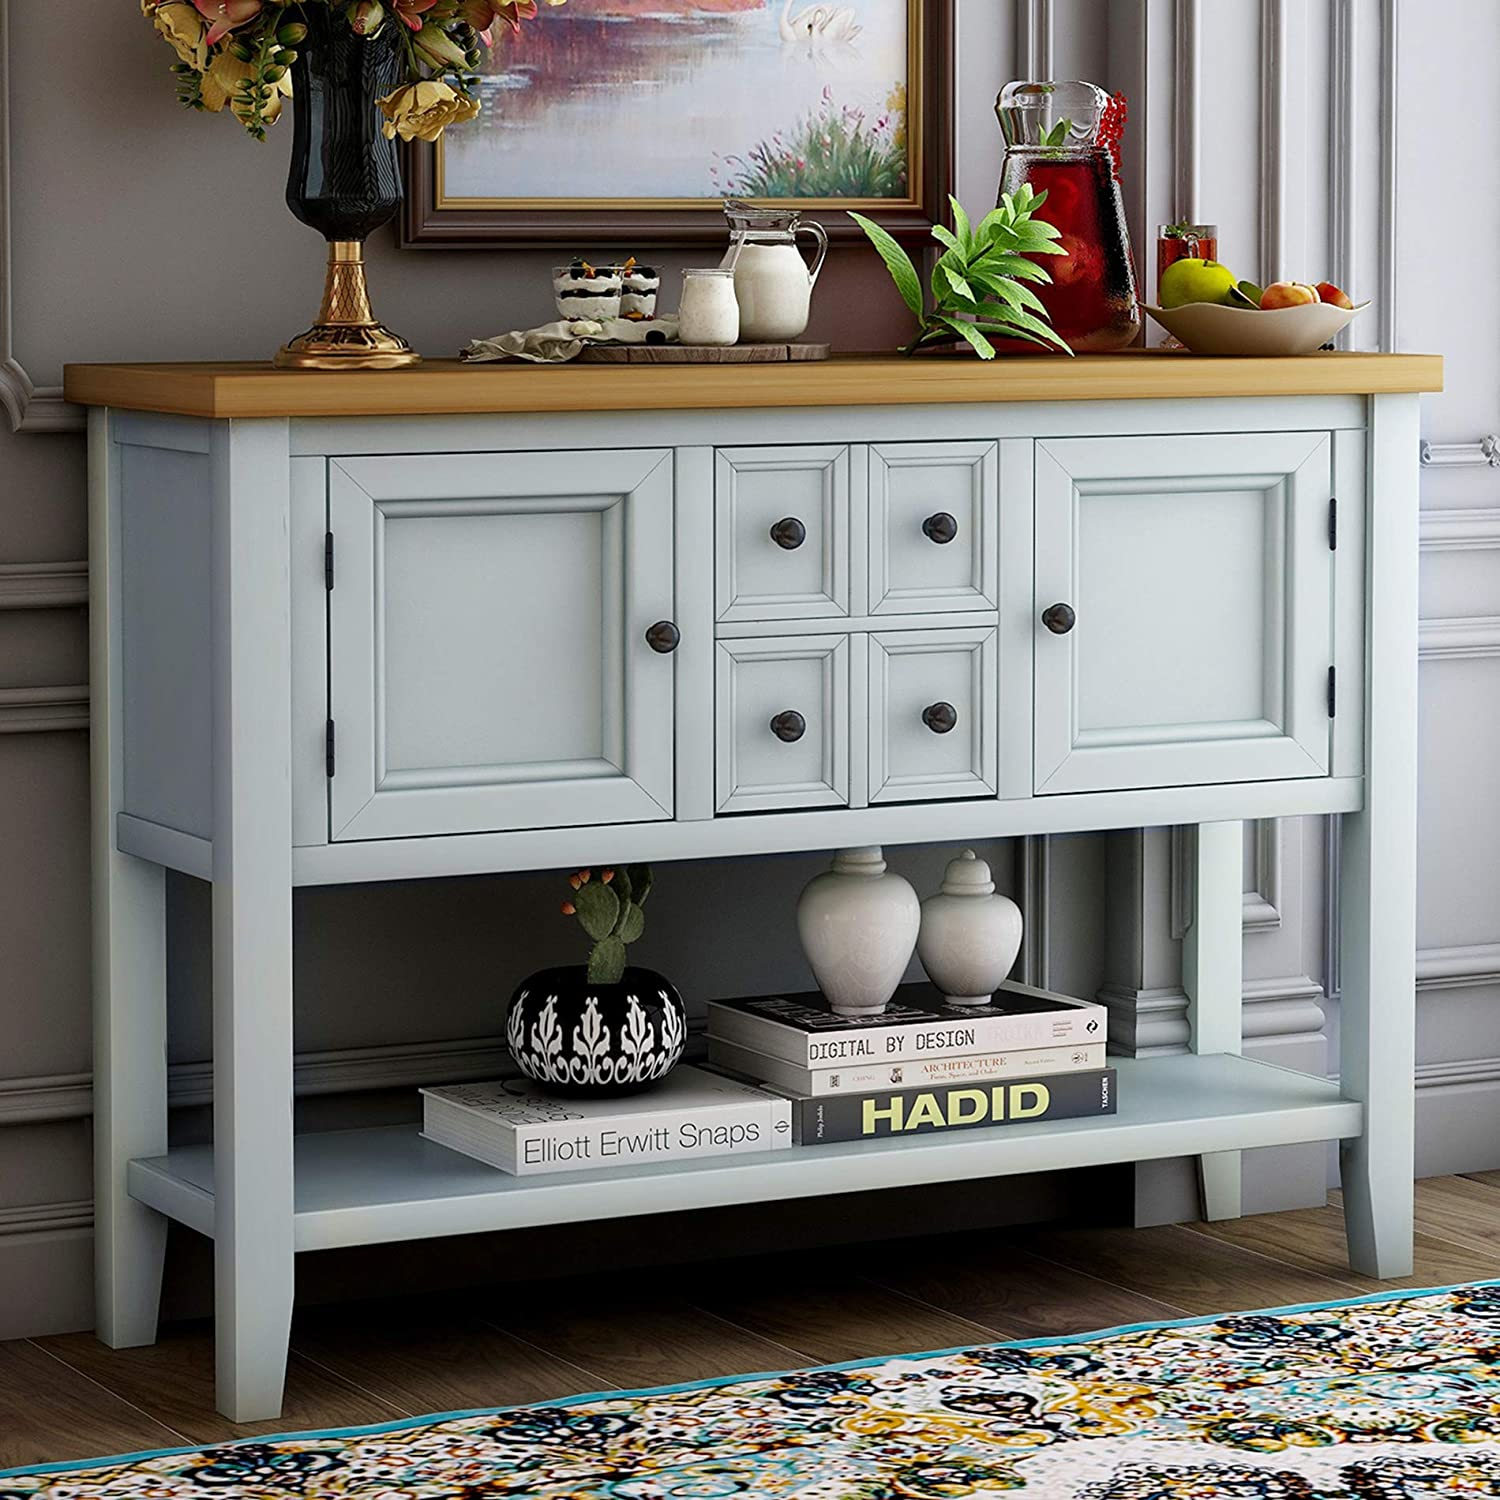 Purlove Console Table Buffet, Console Table With Storage Bins